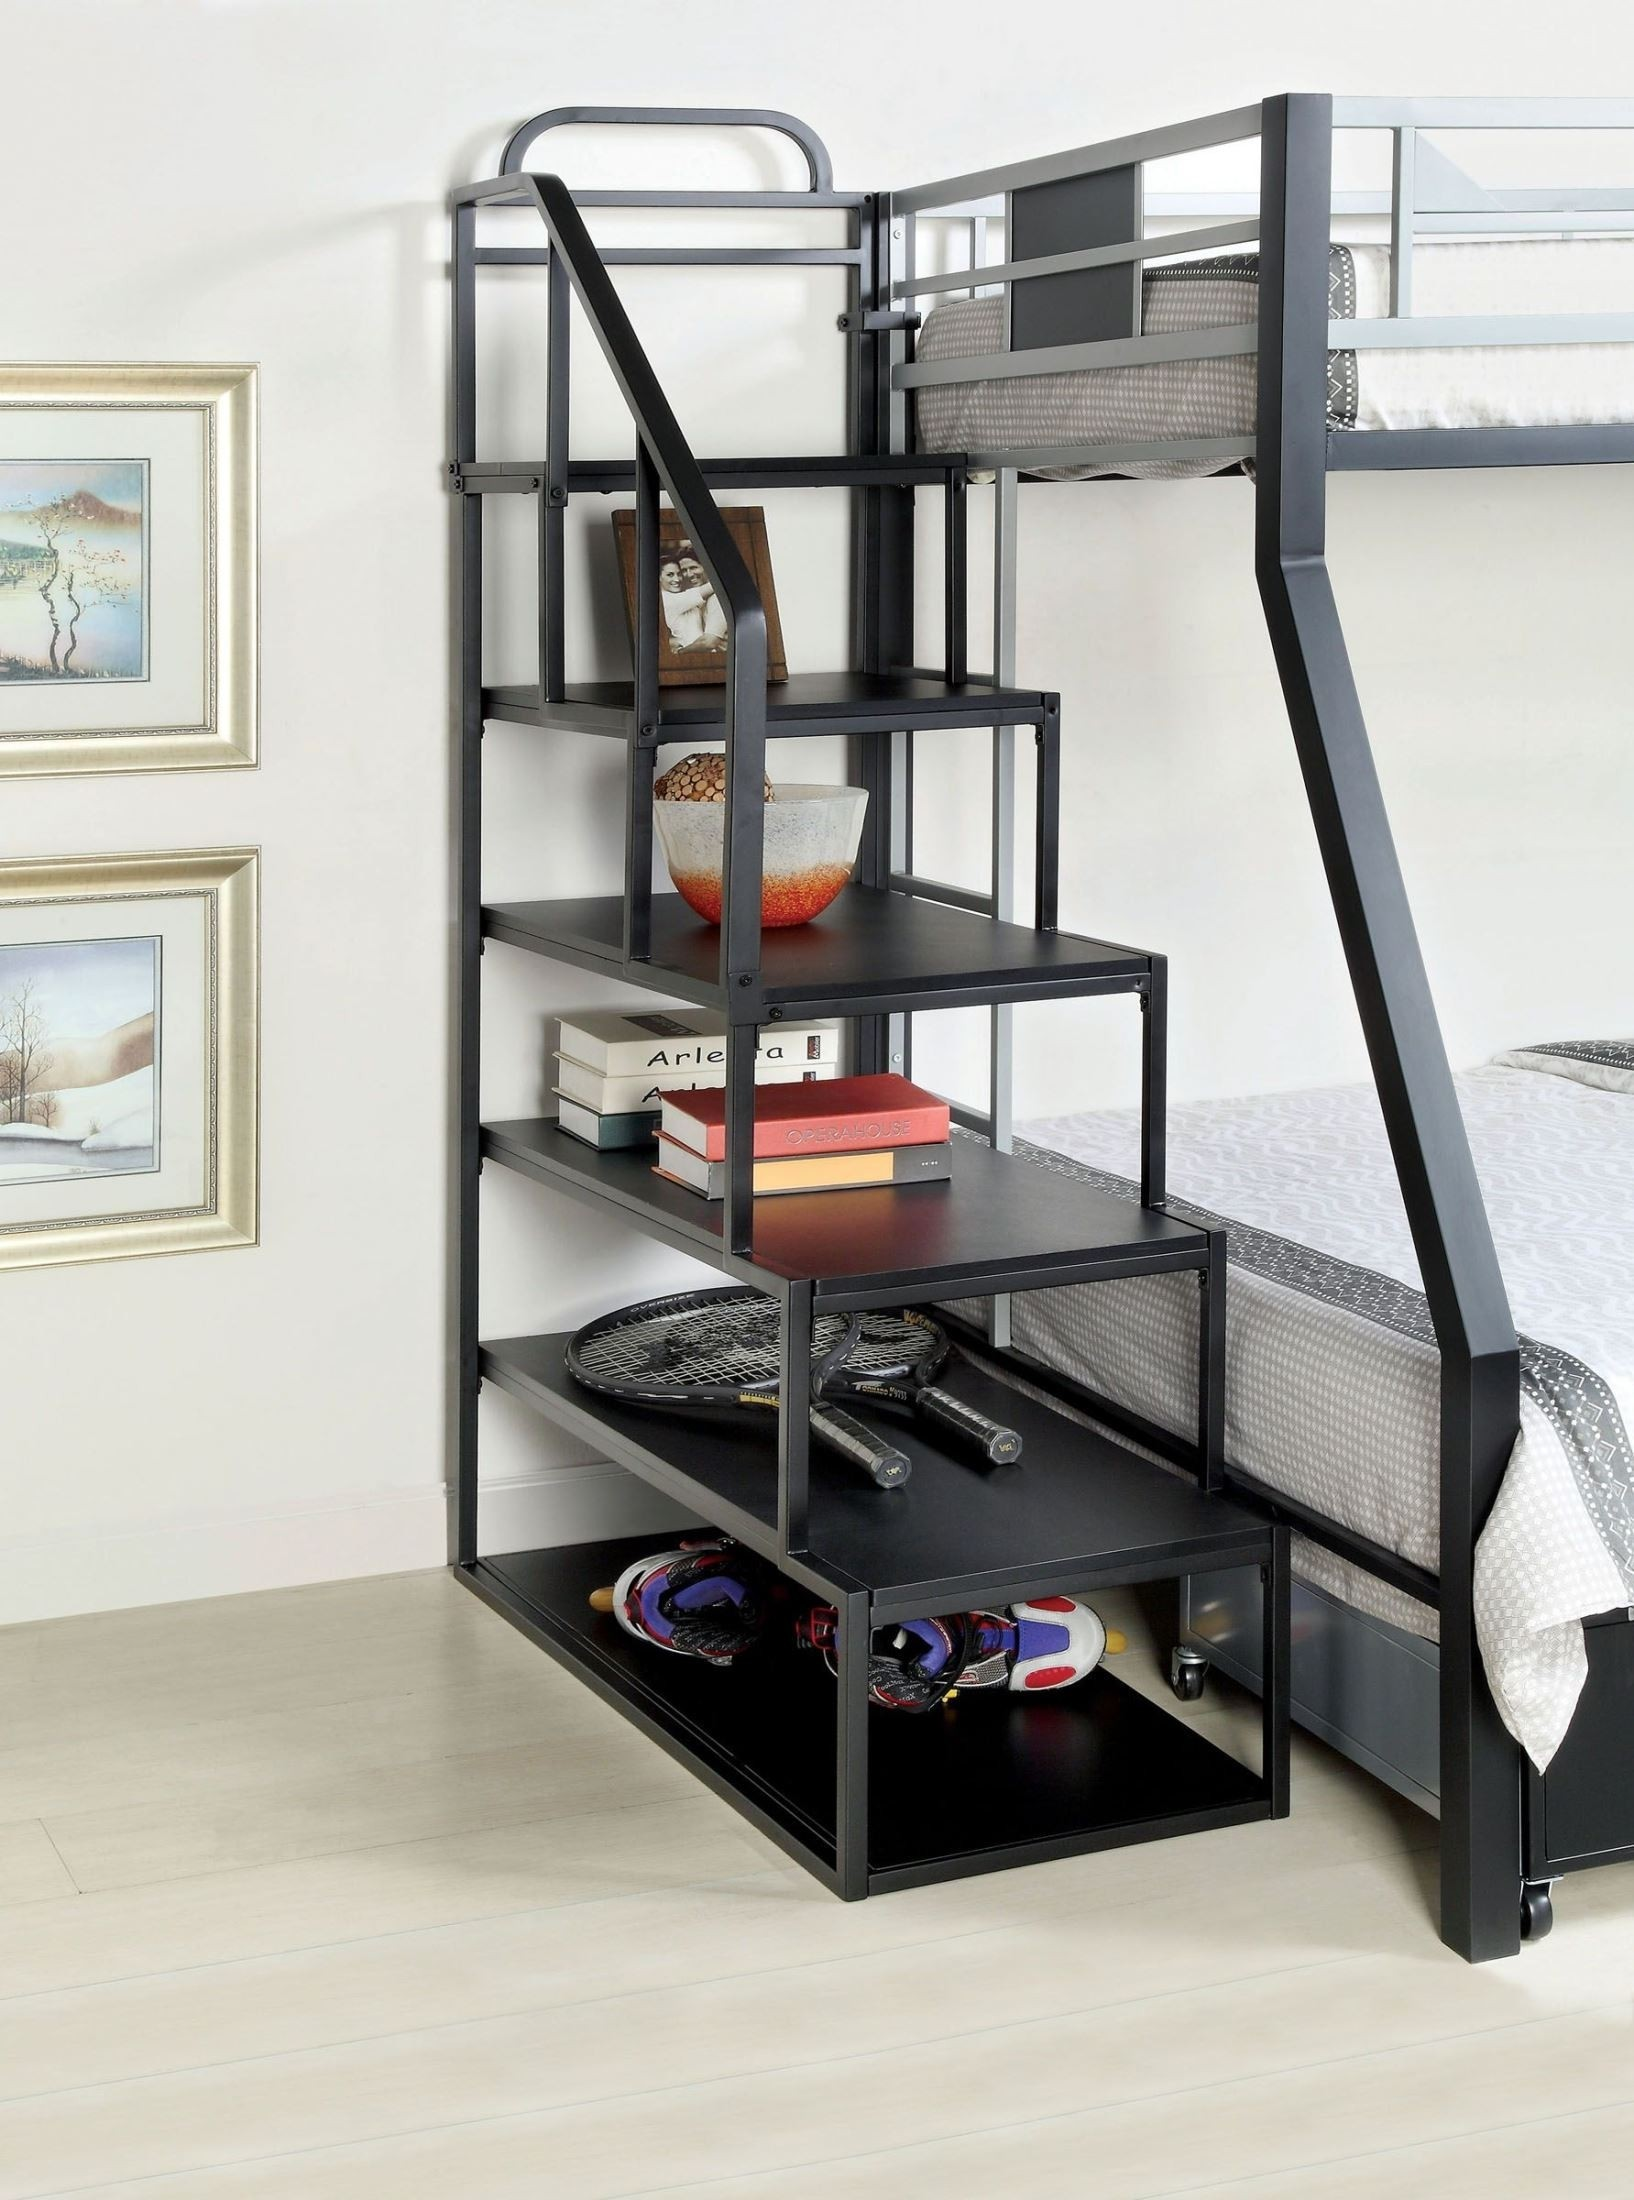 Furniture of America Metal Bunk Bed Side Ladder Bookshelf, Silver and Black Finish, Full (IDF-L1041)